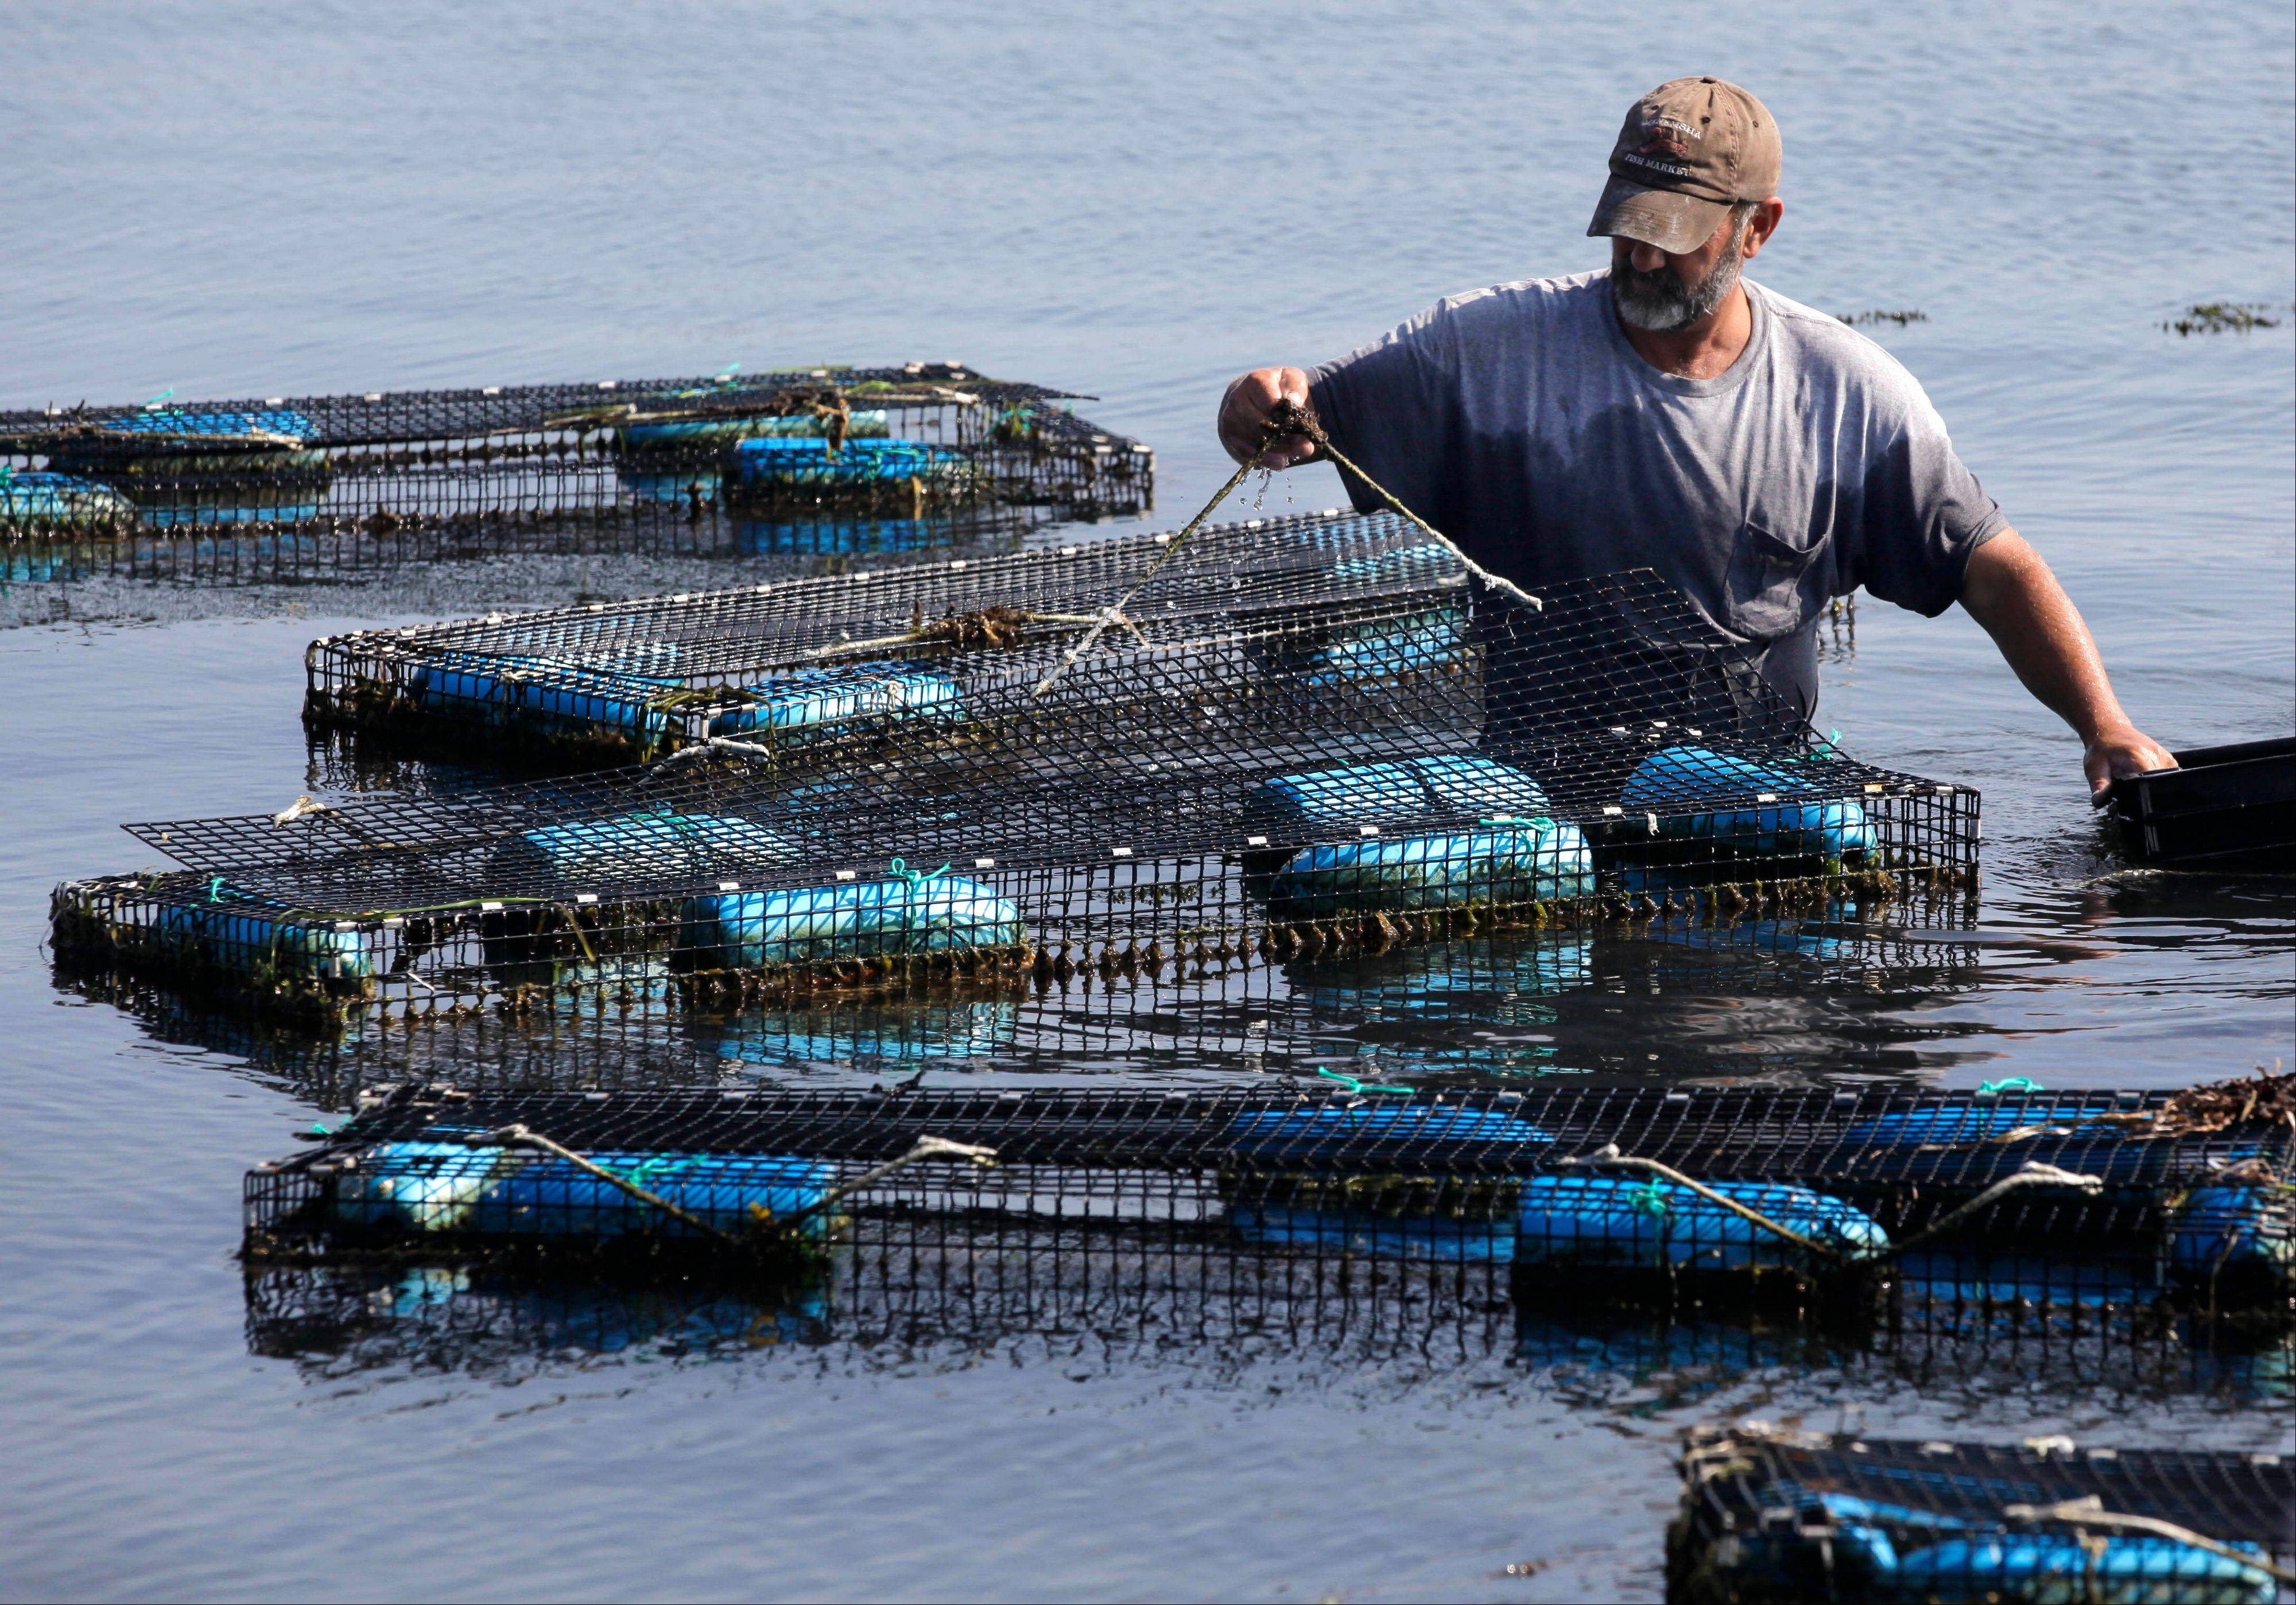 Fisherman Bill Sweeney, of Vineyard Haven, Mass., collects adult scallops from cages in Lagoon Pond, in Vineyard Haven, on the island of Martha's Vineyard, Friday, Aug. 26, 2011. Sweeney removed the scallops, where they were placed to spawn, to be released back in the wild in advance of Hurricane Irene. The scallops could be killed if left in the traps during a hurricane.